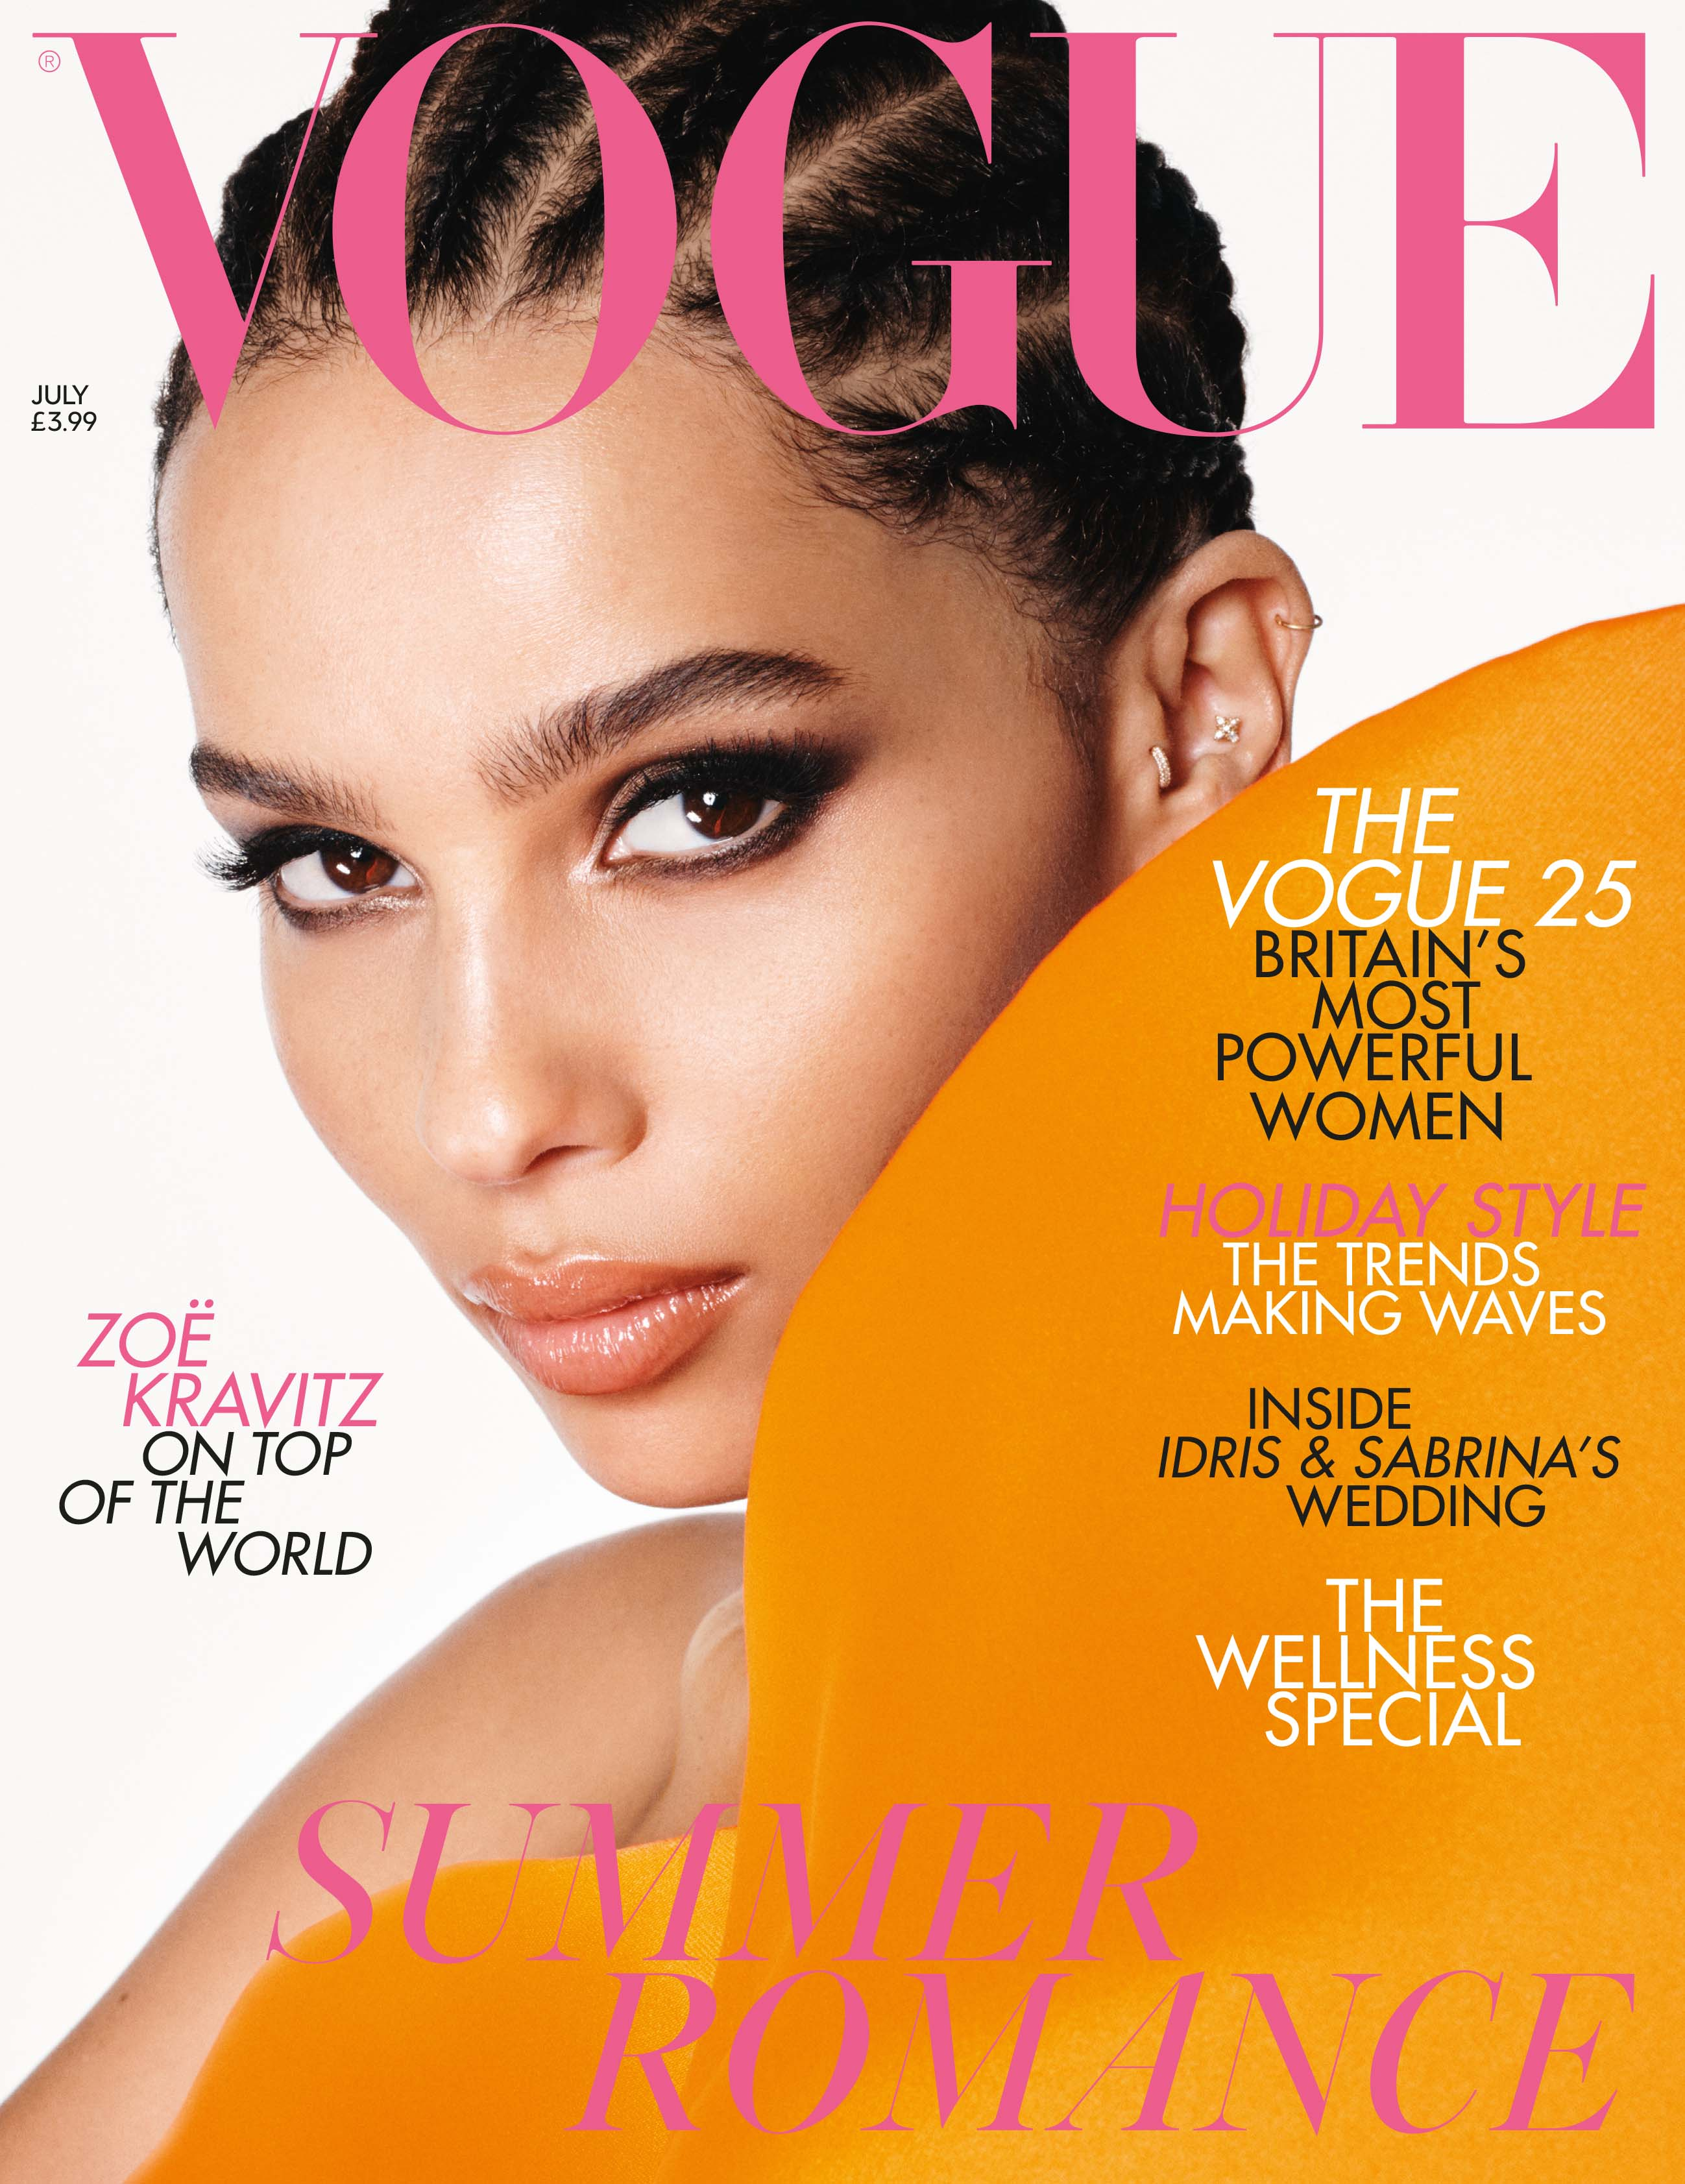 The July issue of British Vogue